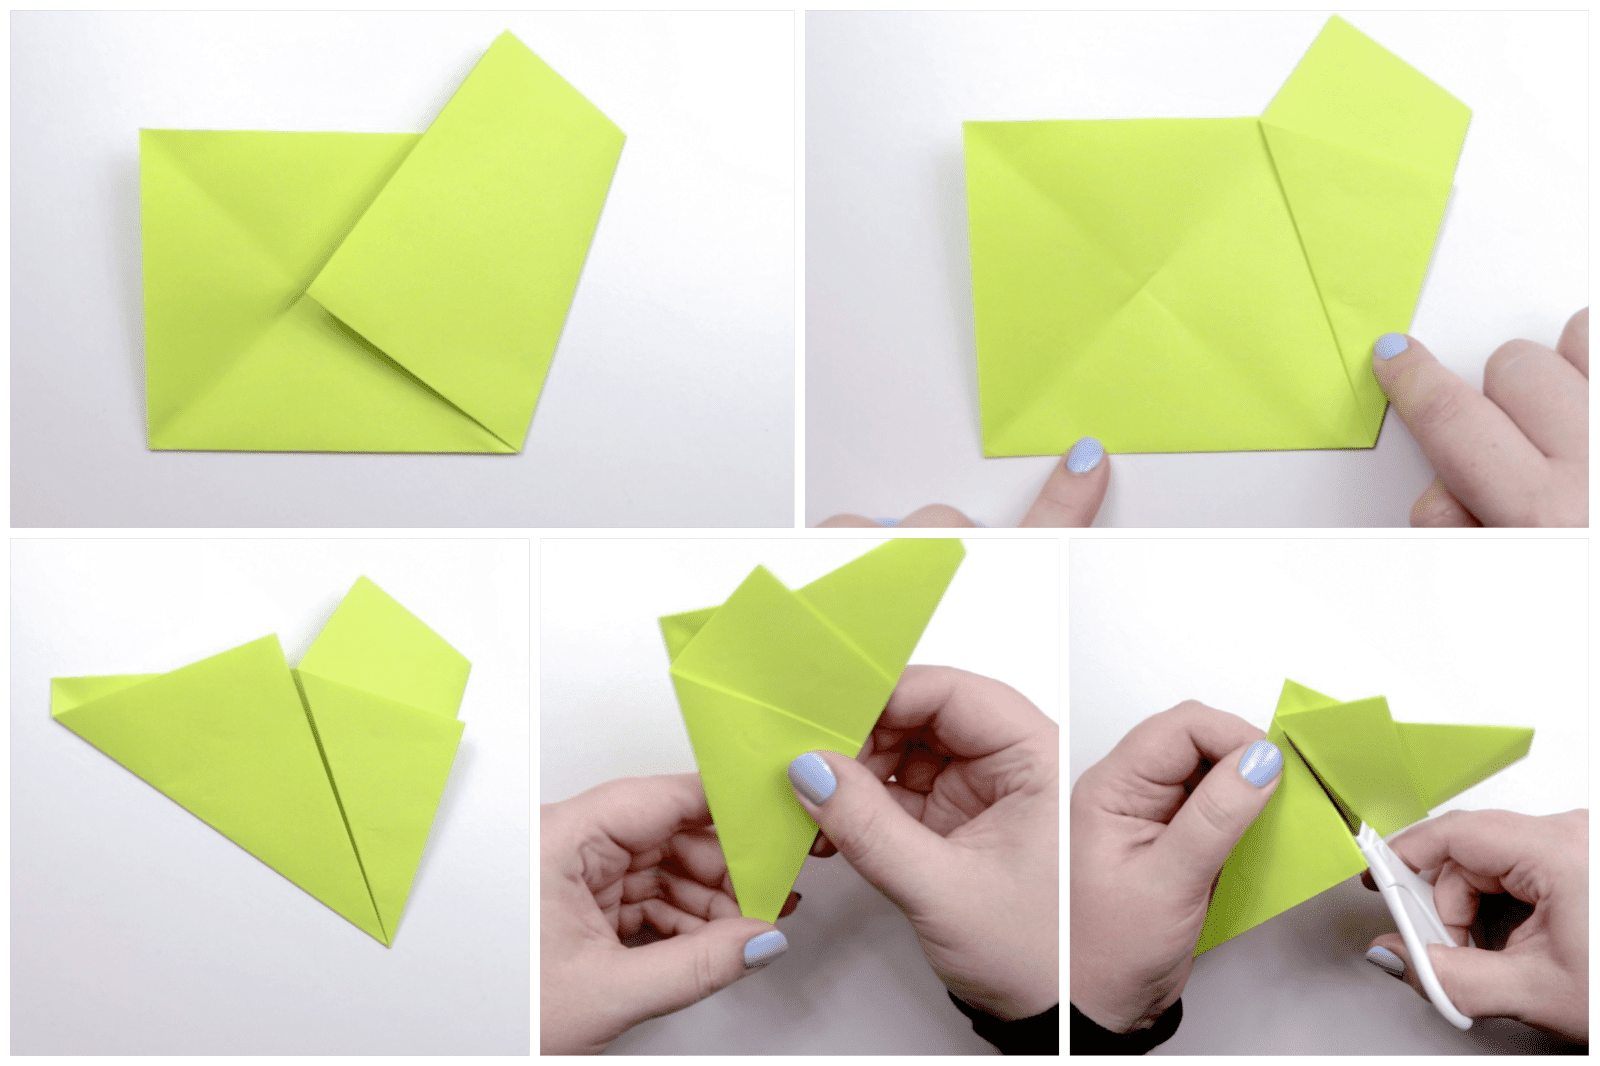 How To Make A 3d Origami Apple Central Lookup Model Diagrams Stepbystep